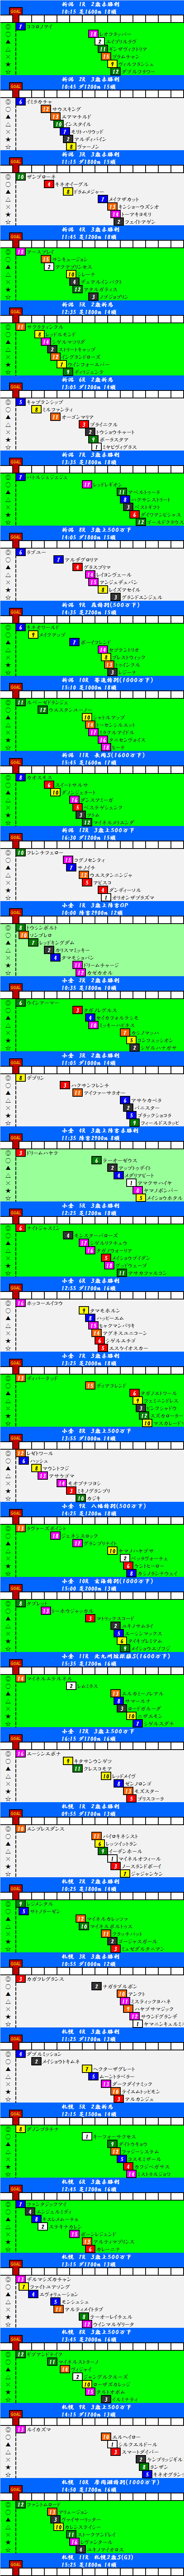 2014090601.png